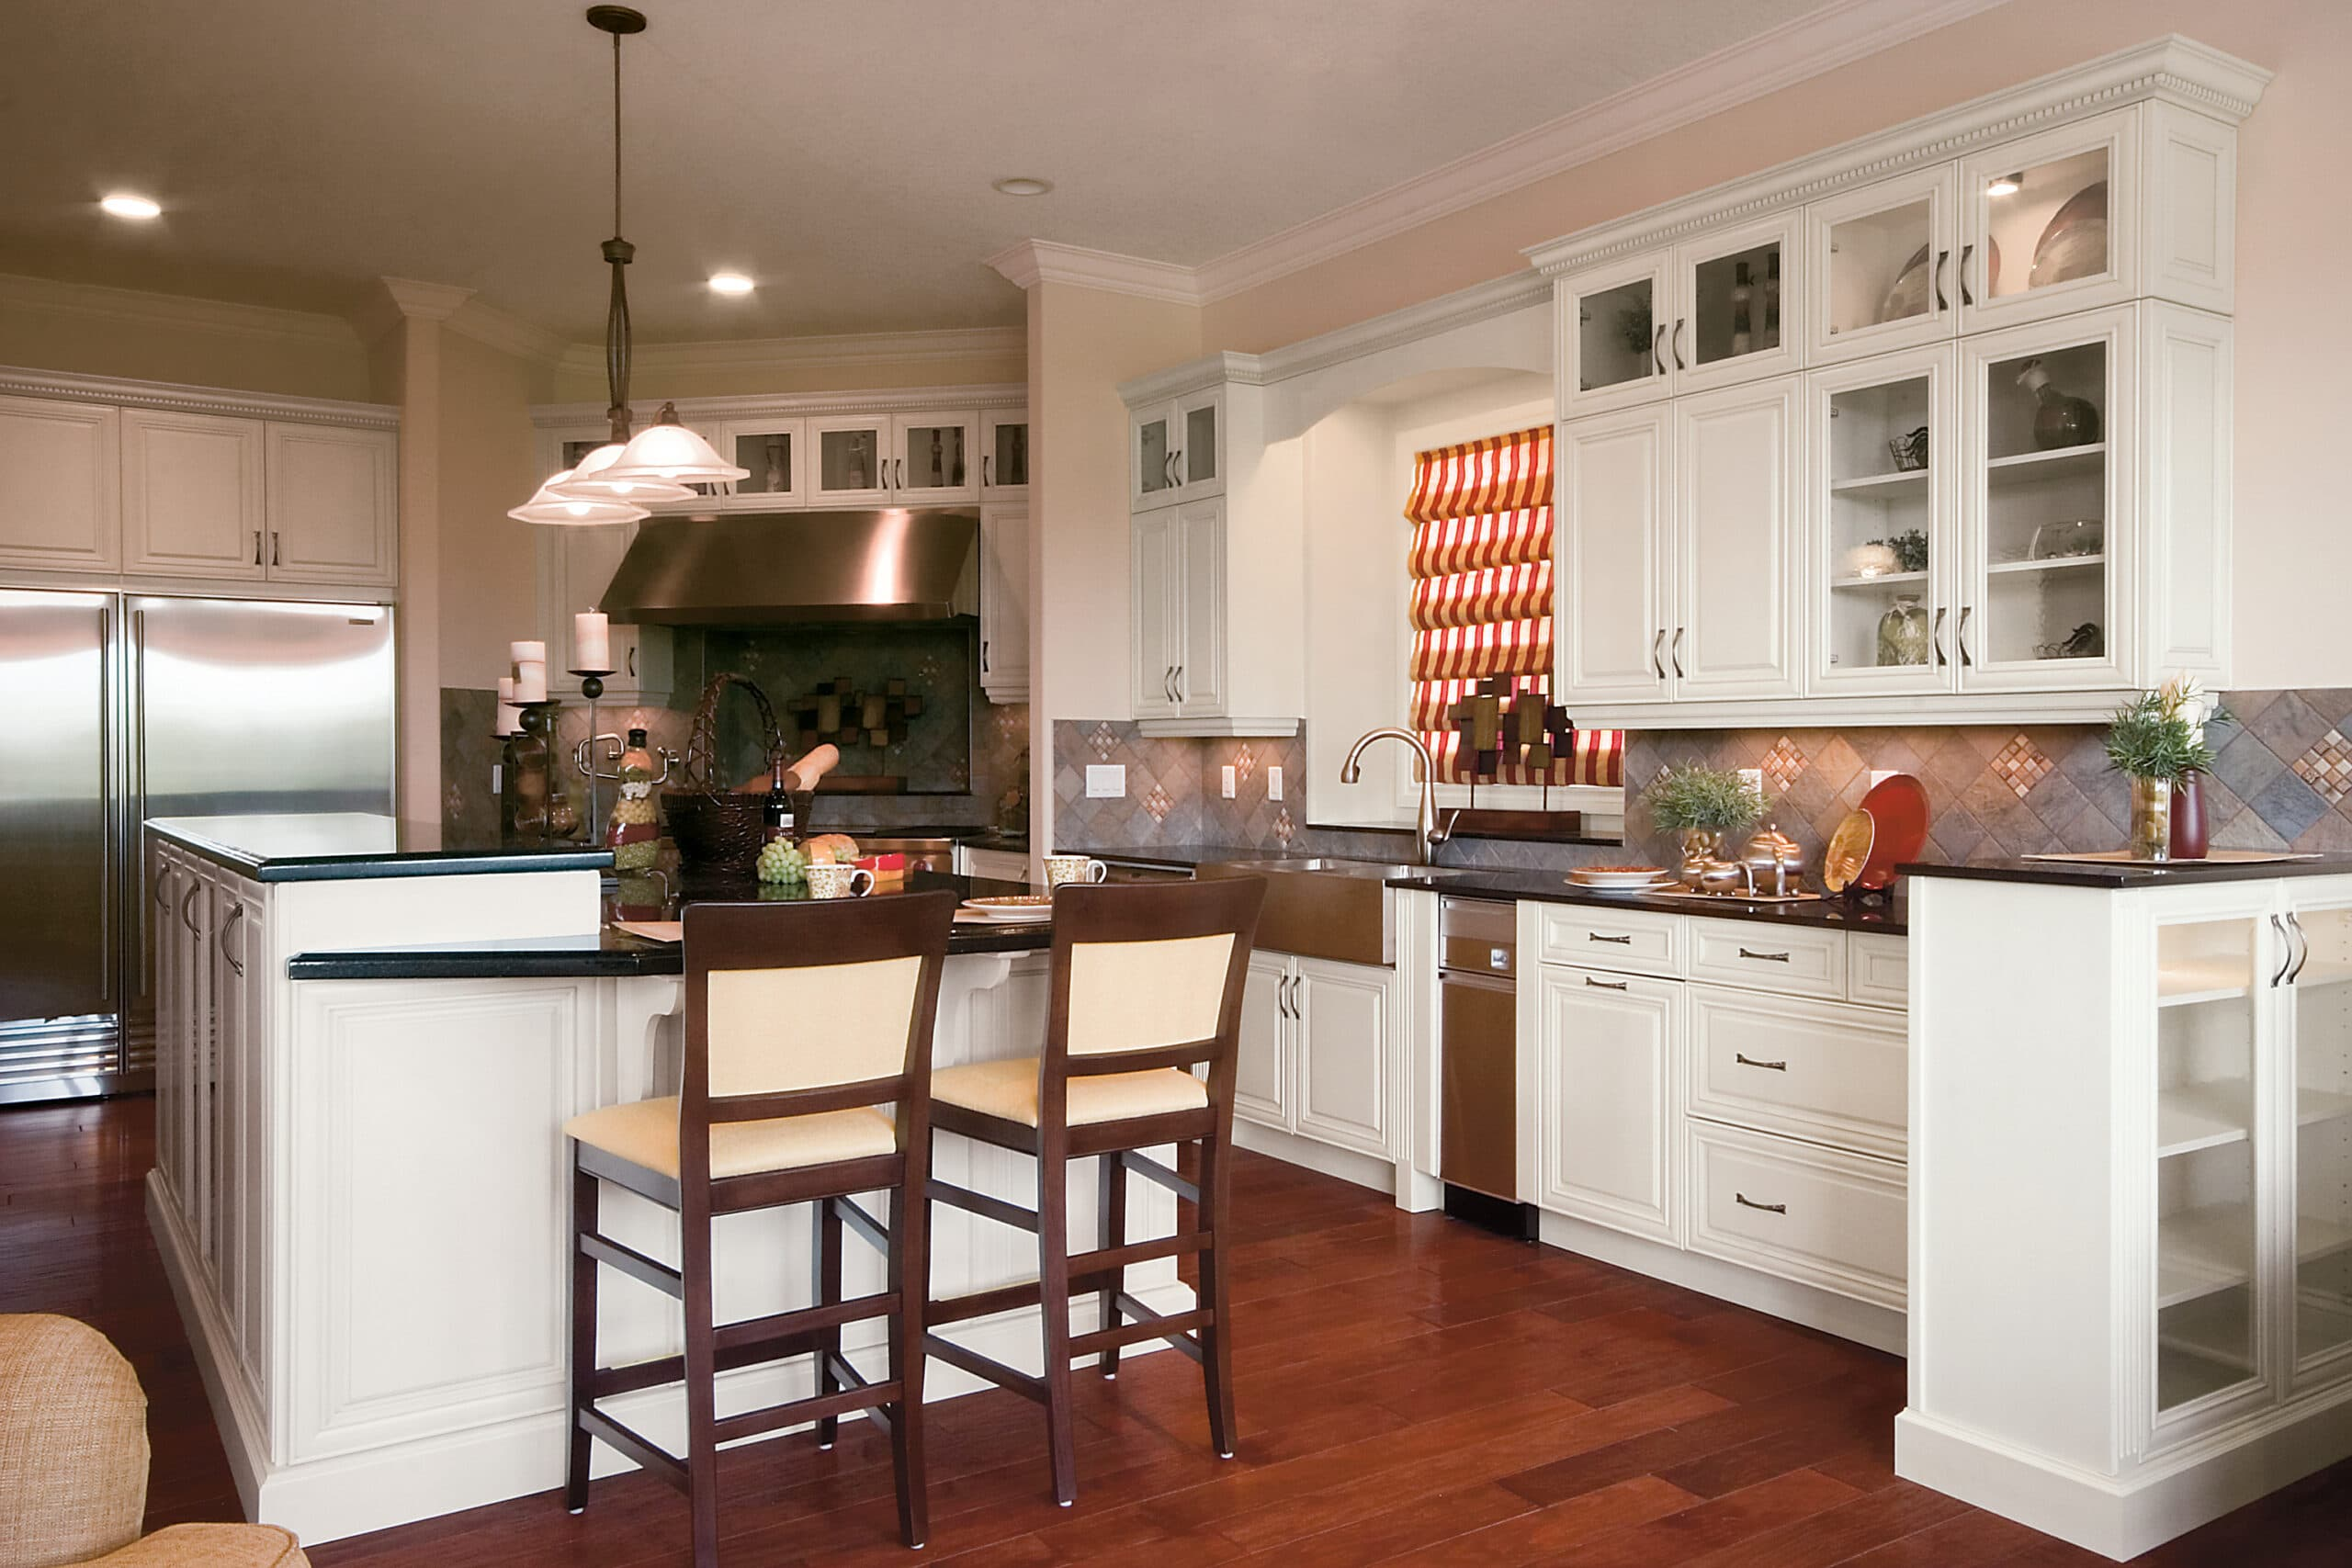 Cabinetry for the Kitchen